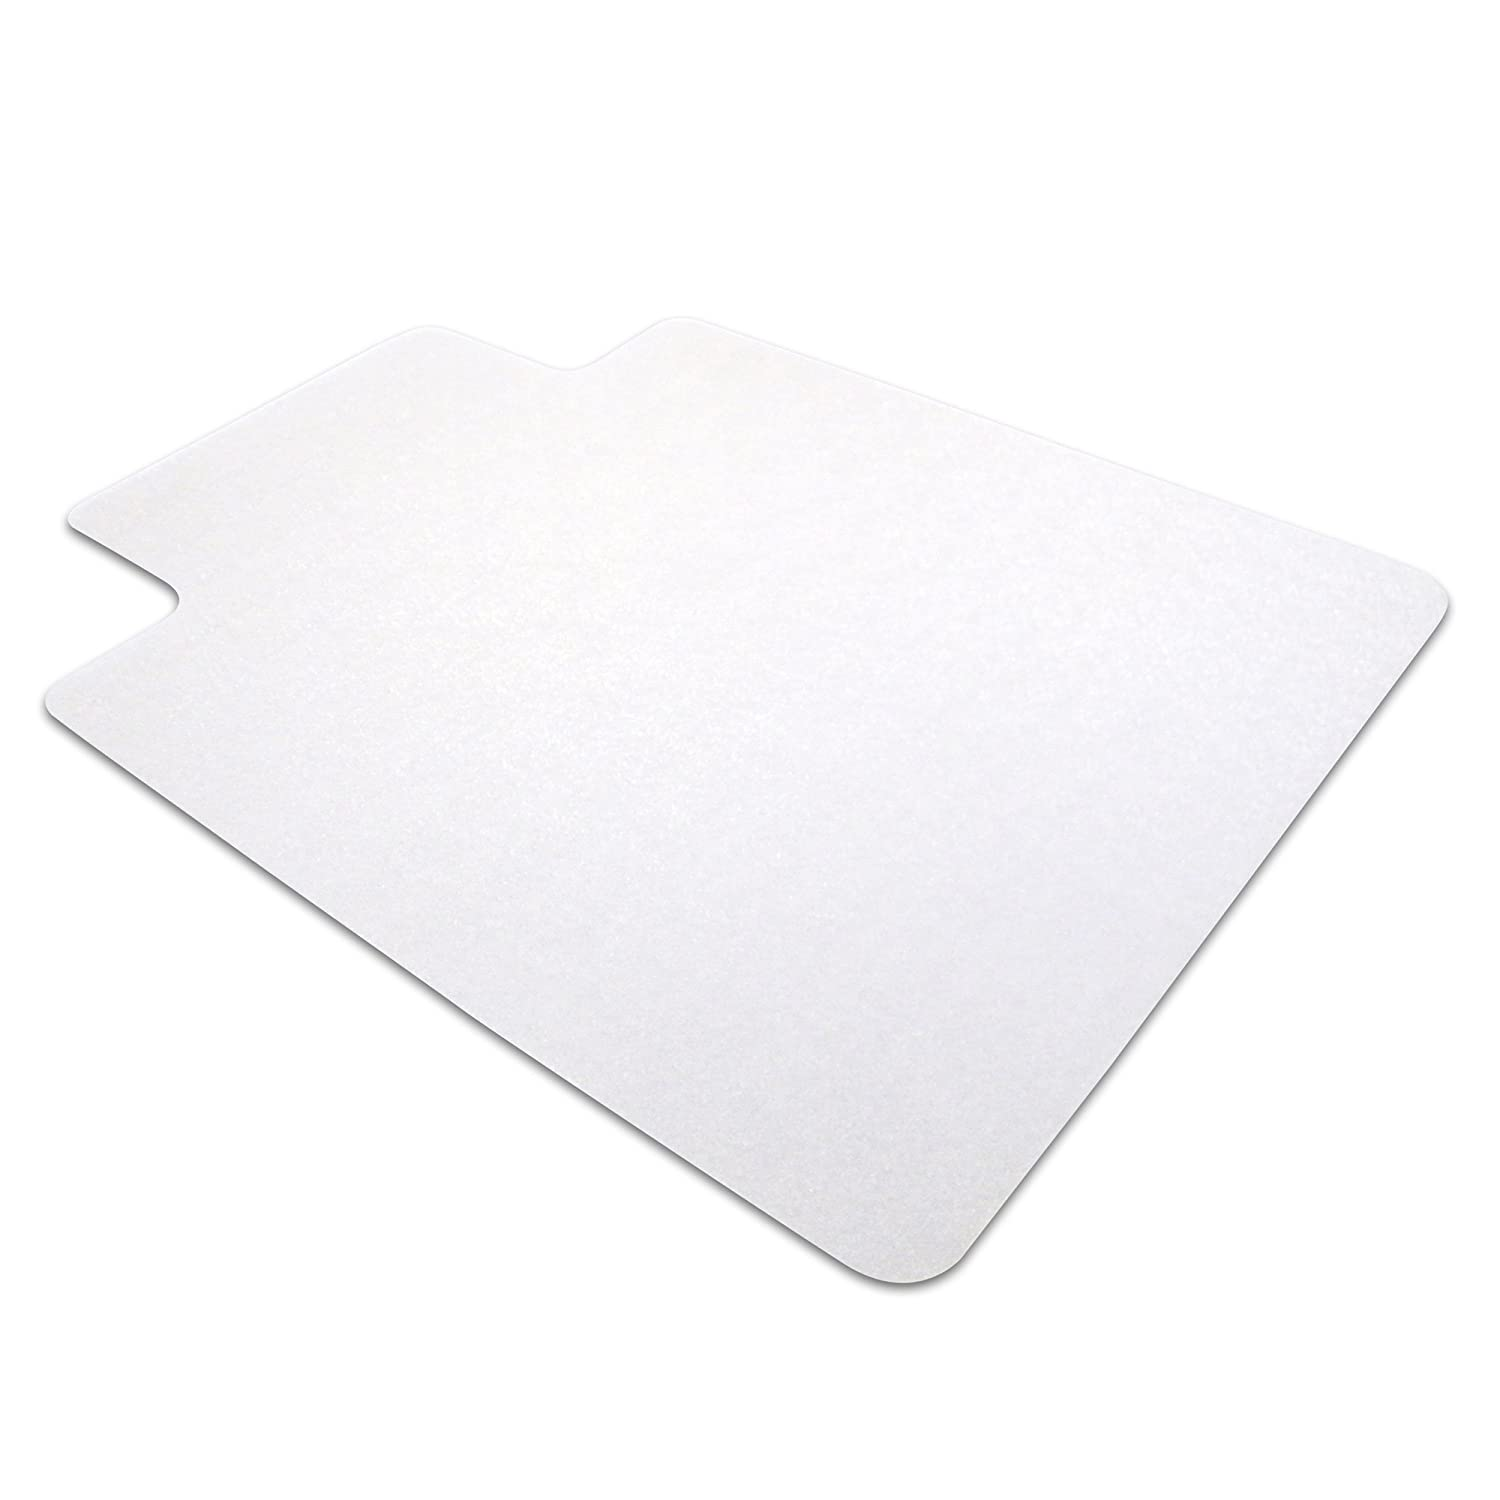 Amazon.com  Cleartex Advantagemat Chair Mat for Hard Floors Clear PVC Rectangular with Lip 36  x 48  (FR129020LV)  Office Desk Pads And Blotters ...  sc 1 st  Amazon.com & Amazon.com : Cleartex Advantagemat Chair Mat for Hard Floors Clear ...